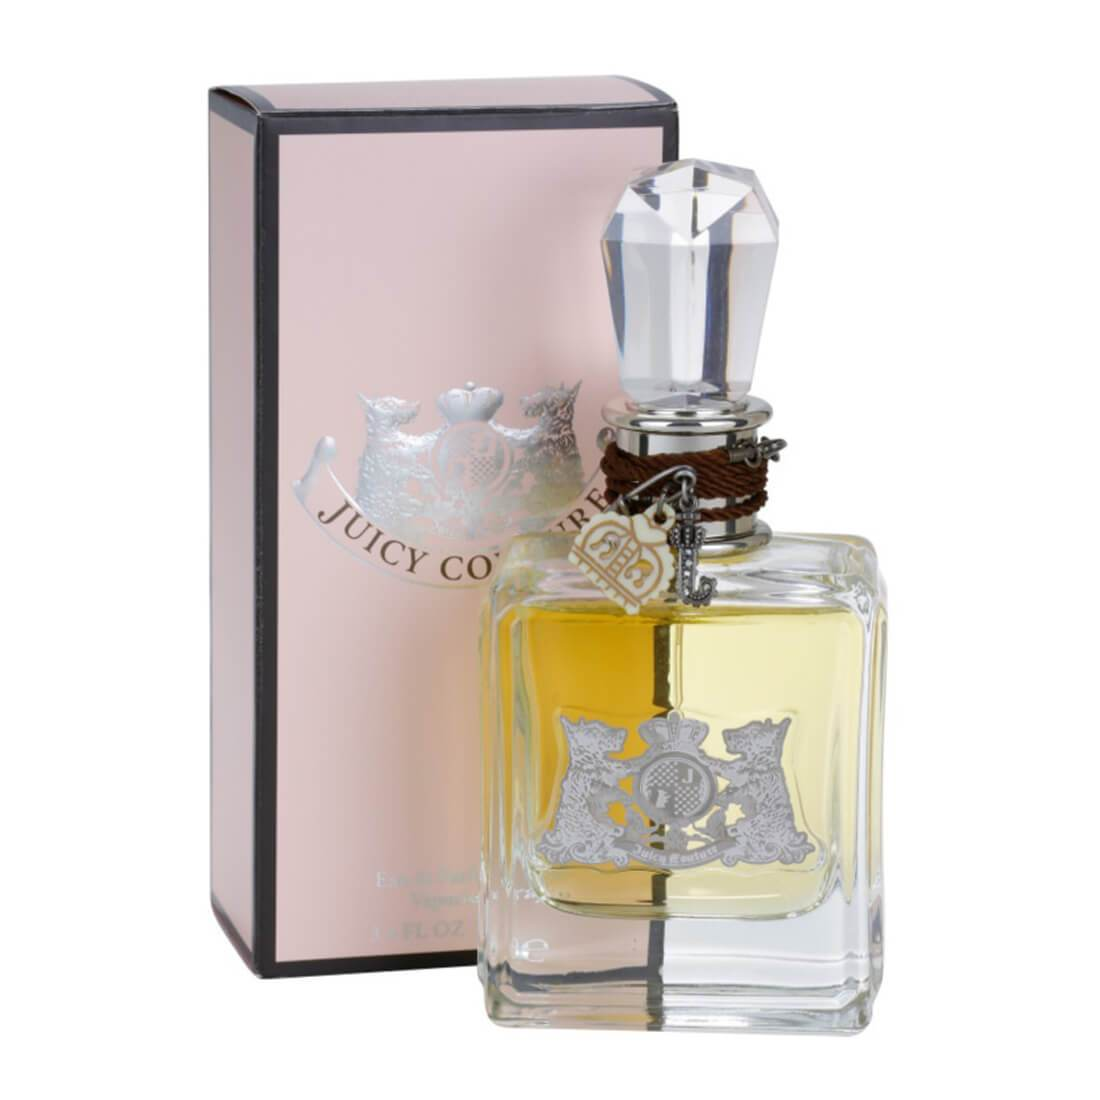 Juicy Couture Juicy Couture Eau De Perfume For Women - 100ml